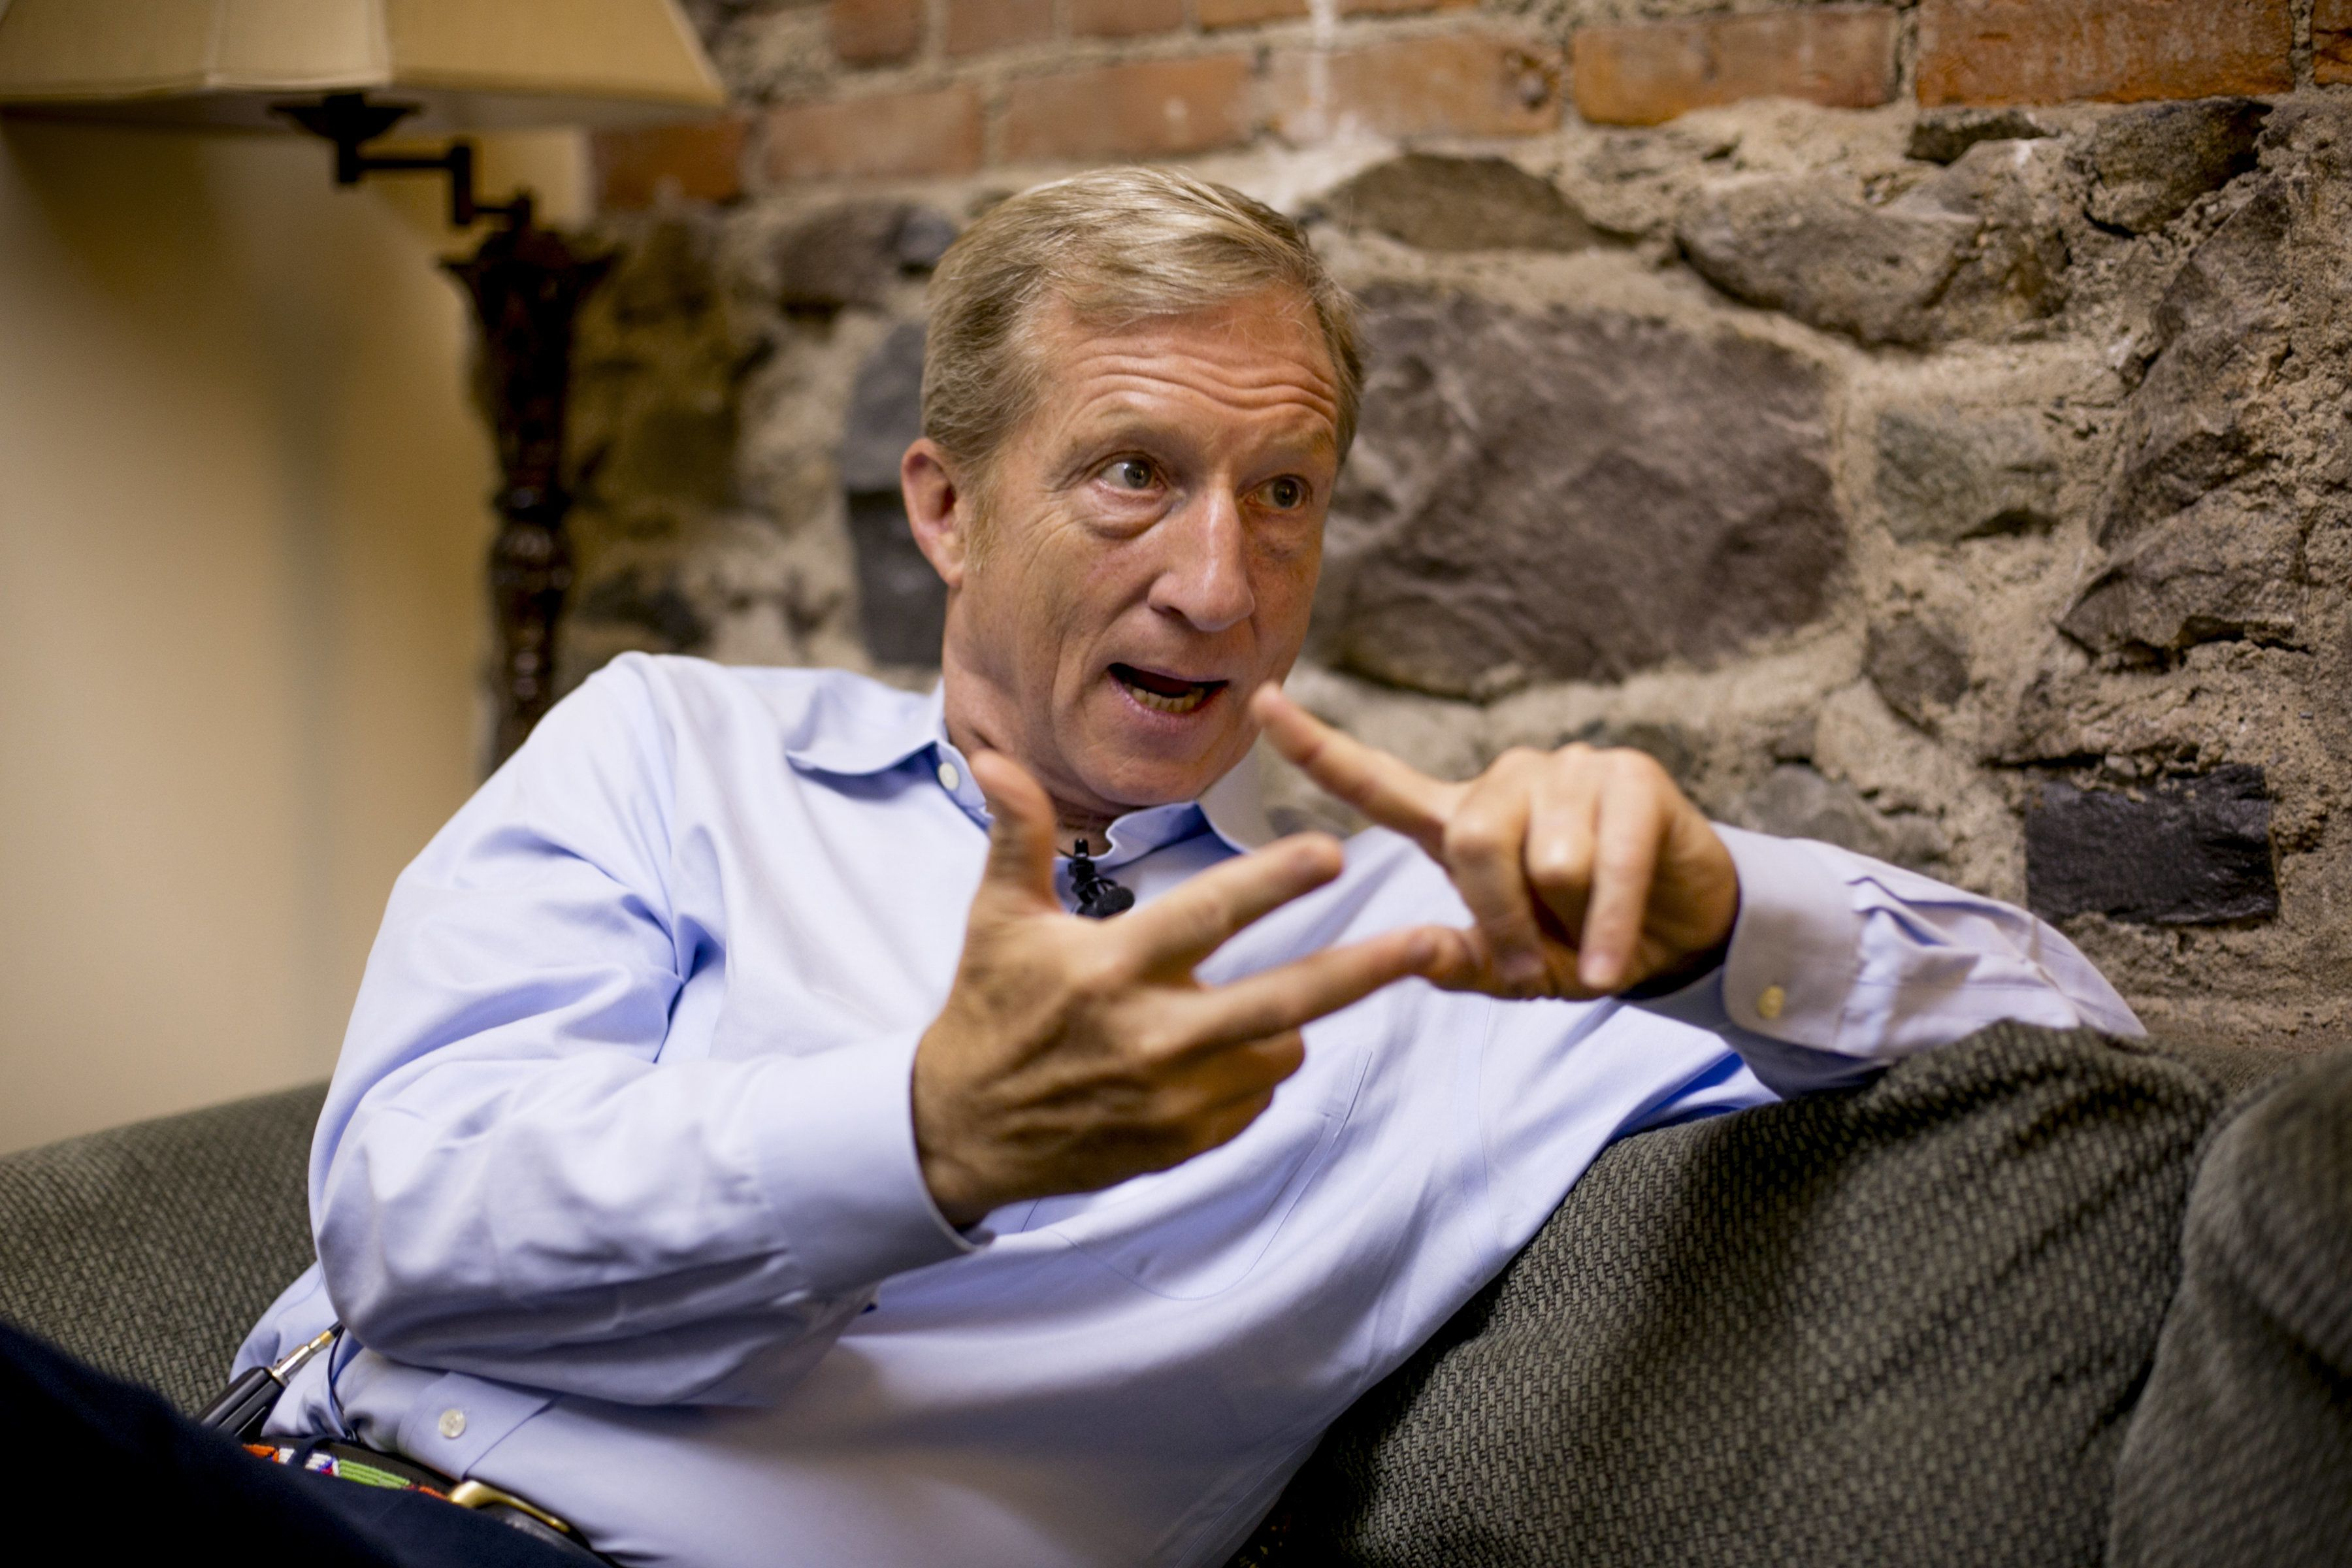 Tom Steyer, co-founder of NextGen Climate Action Committee, speaks backstage before a 'Need To Impeach' event in Lansing, Michigan, U.S., on Monday, Aug. 13, 2018. Steyer plans to spend an additional $10 million on helping Democrats take control of the House by attempting to drive up turnout among infrequent voters motivated by the idea of impeaching President Donald Trump. Photographer: Anthony Lanzilote/Bloomberg via Getty Images